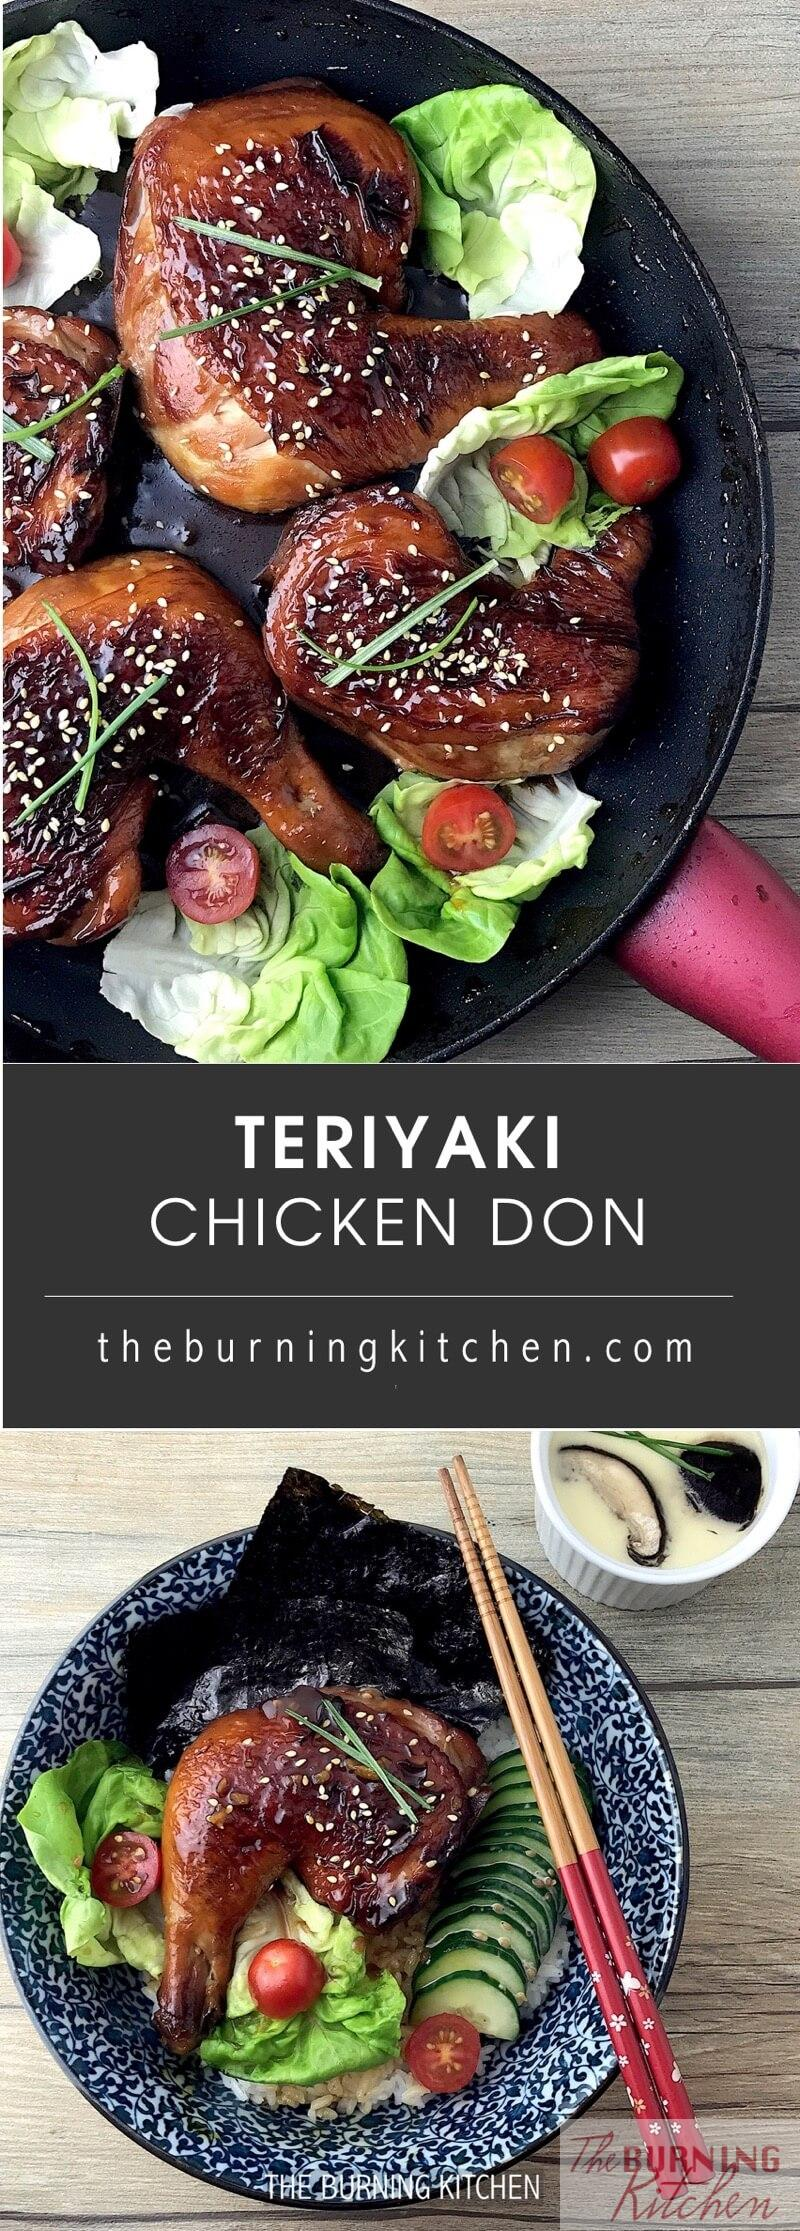 Instead of heading to a Japanese restaurant, why not make this easy 30-min Teriyaki Chicken Don at home? The homemade Teriyaki sauce uses just 3 ingredients and gives a beautiful glossy finish. Yummy and easy to make! #teriyakichickendon #japfood #quickandeasymeal